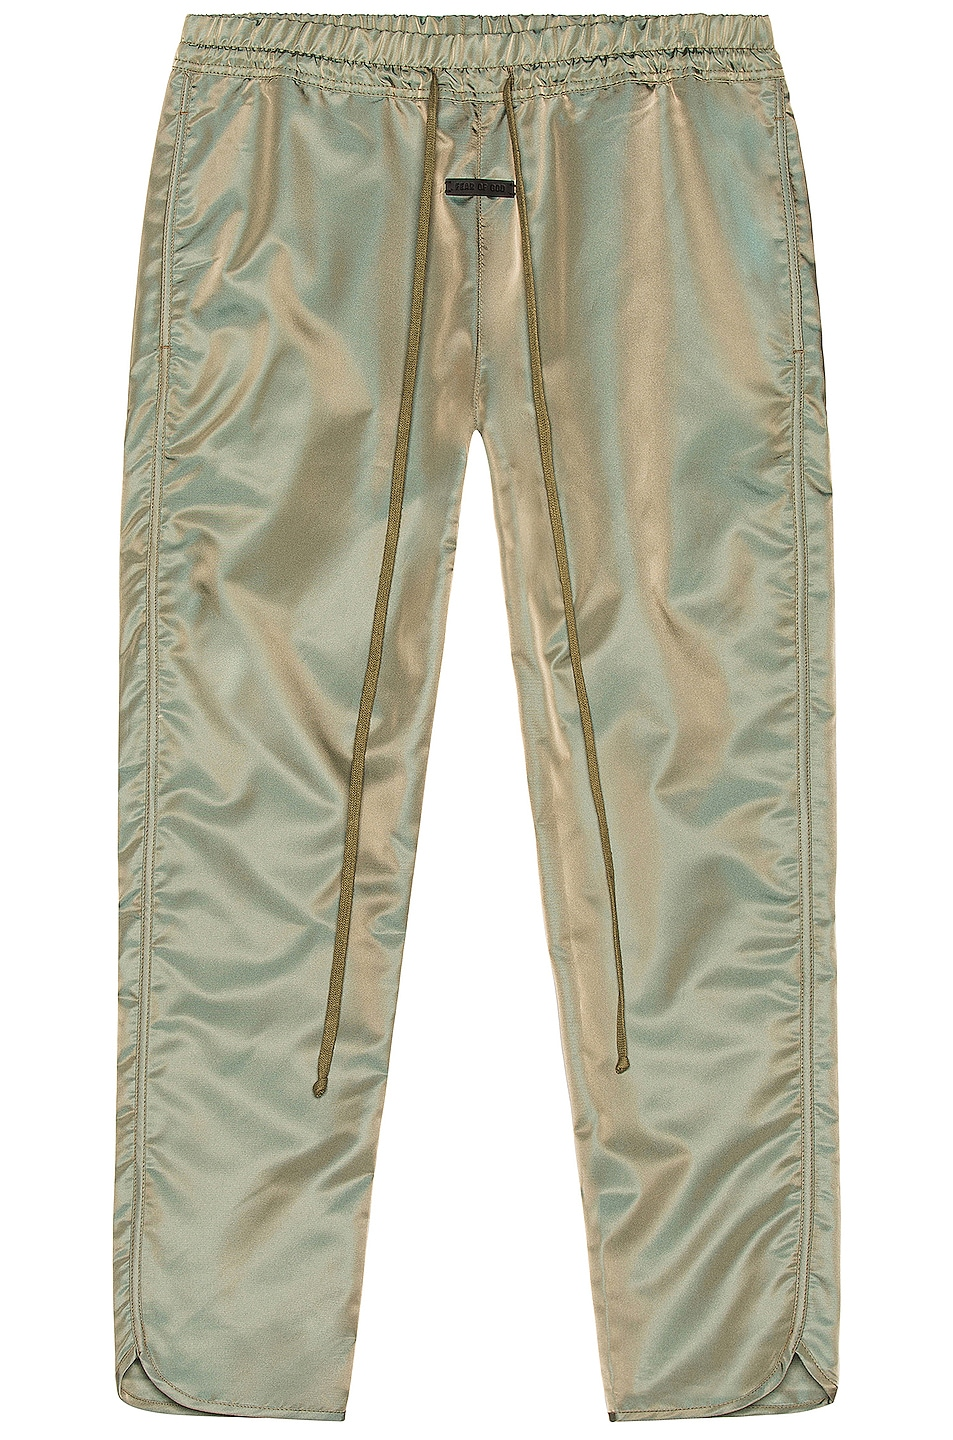 Image 1 of Fear of God Track Pant in Green Iridescent